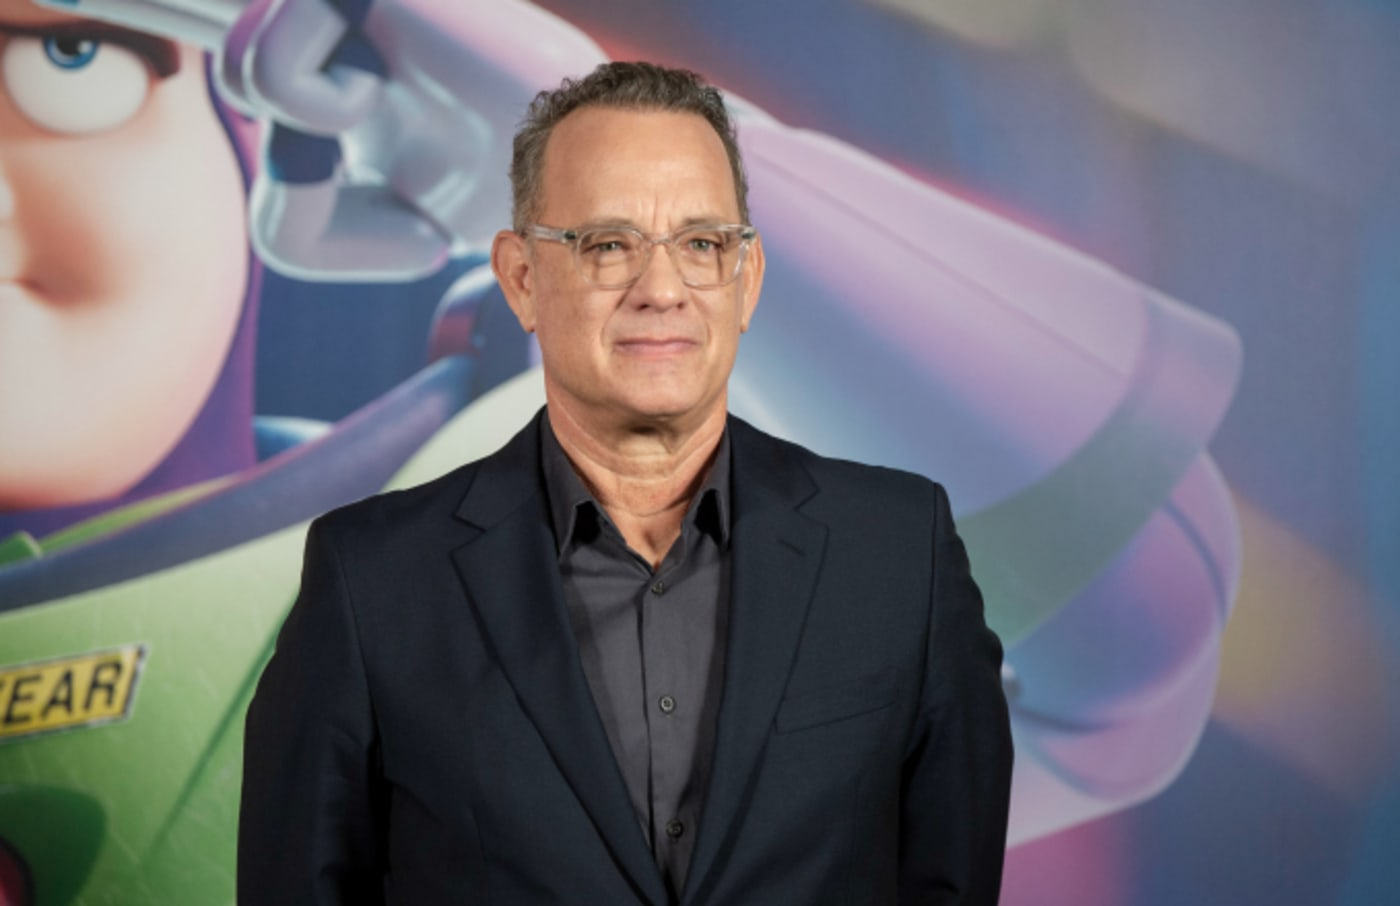 Tom Hanks attends the 'Toy Story 4' photocall